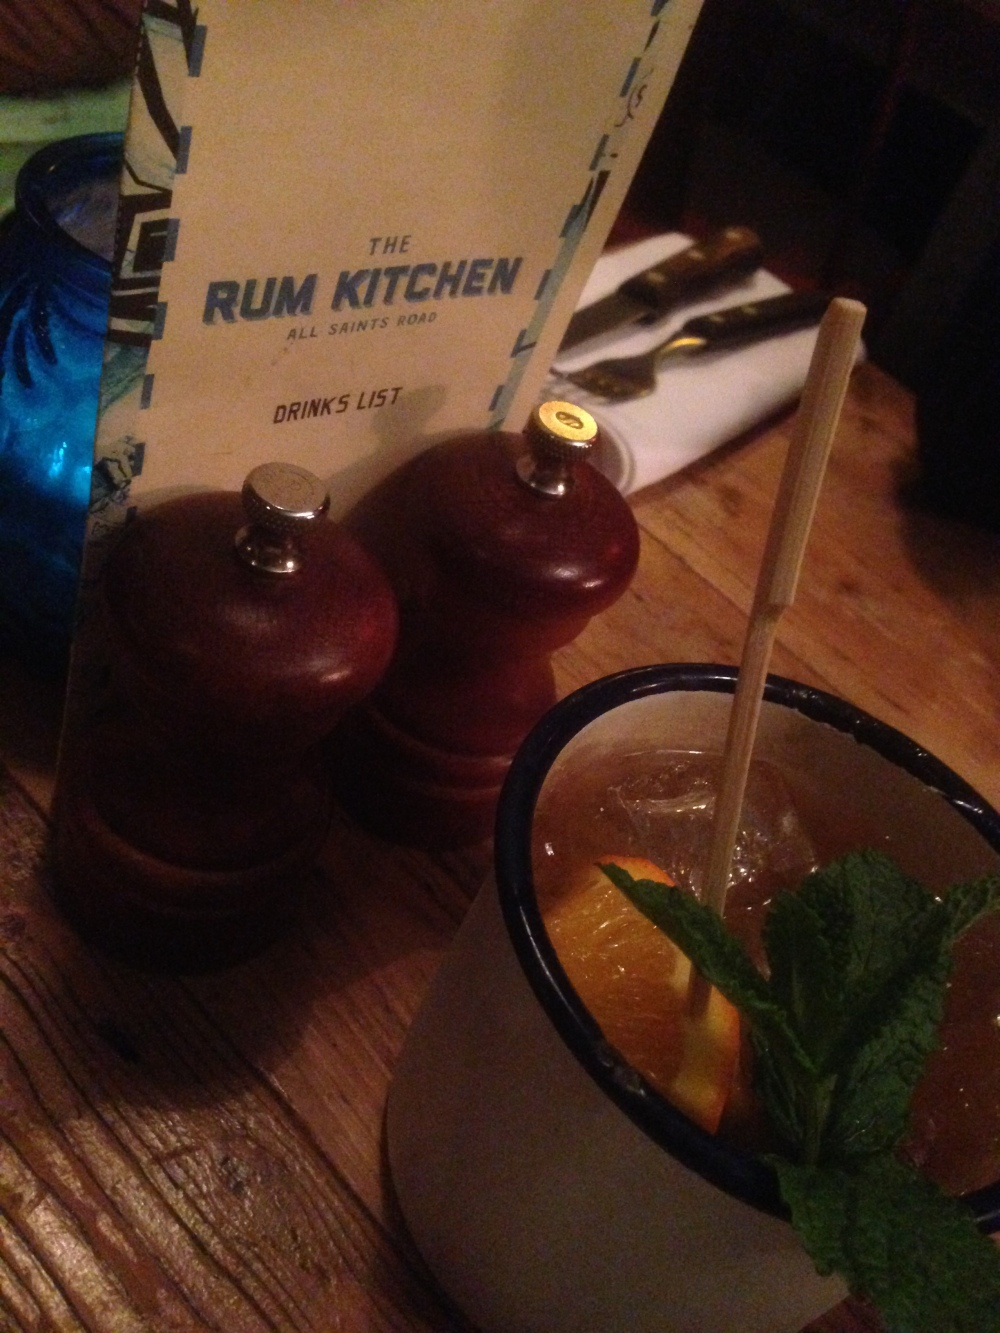 The Rum Kitchen